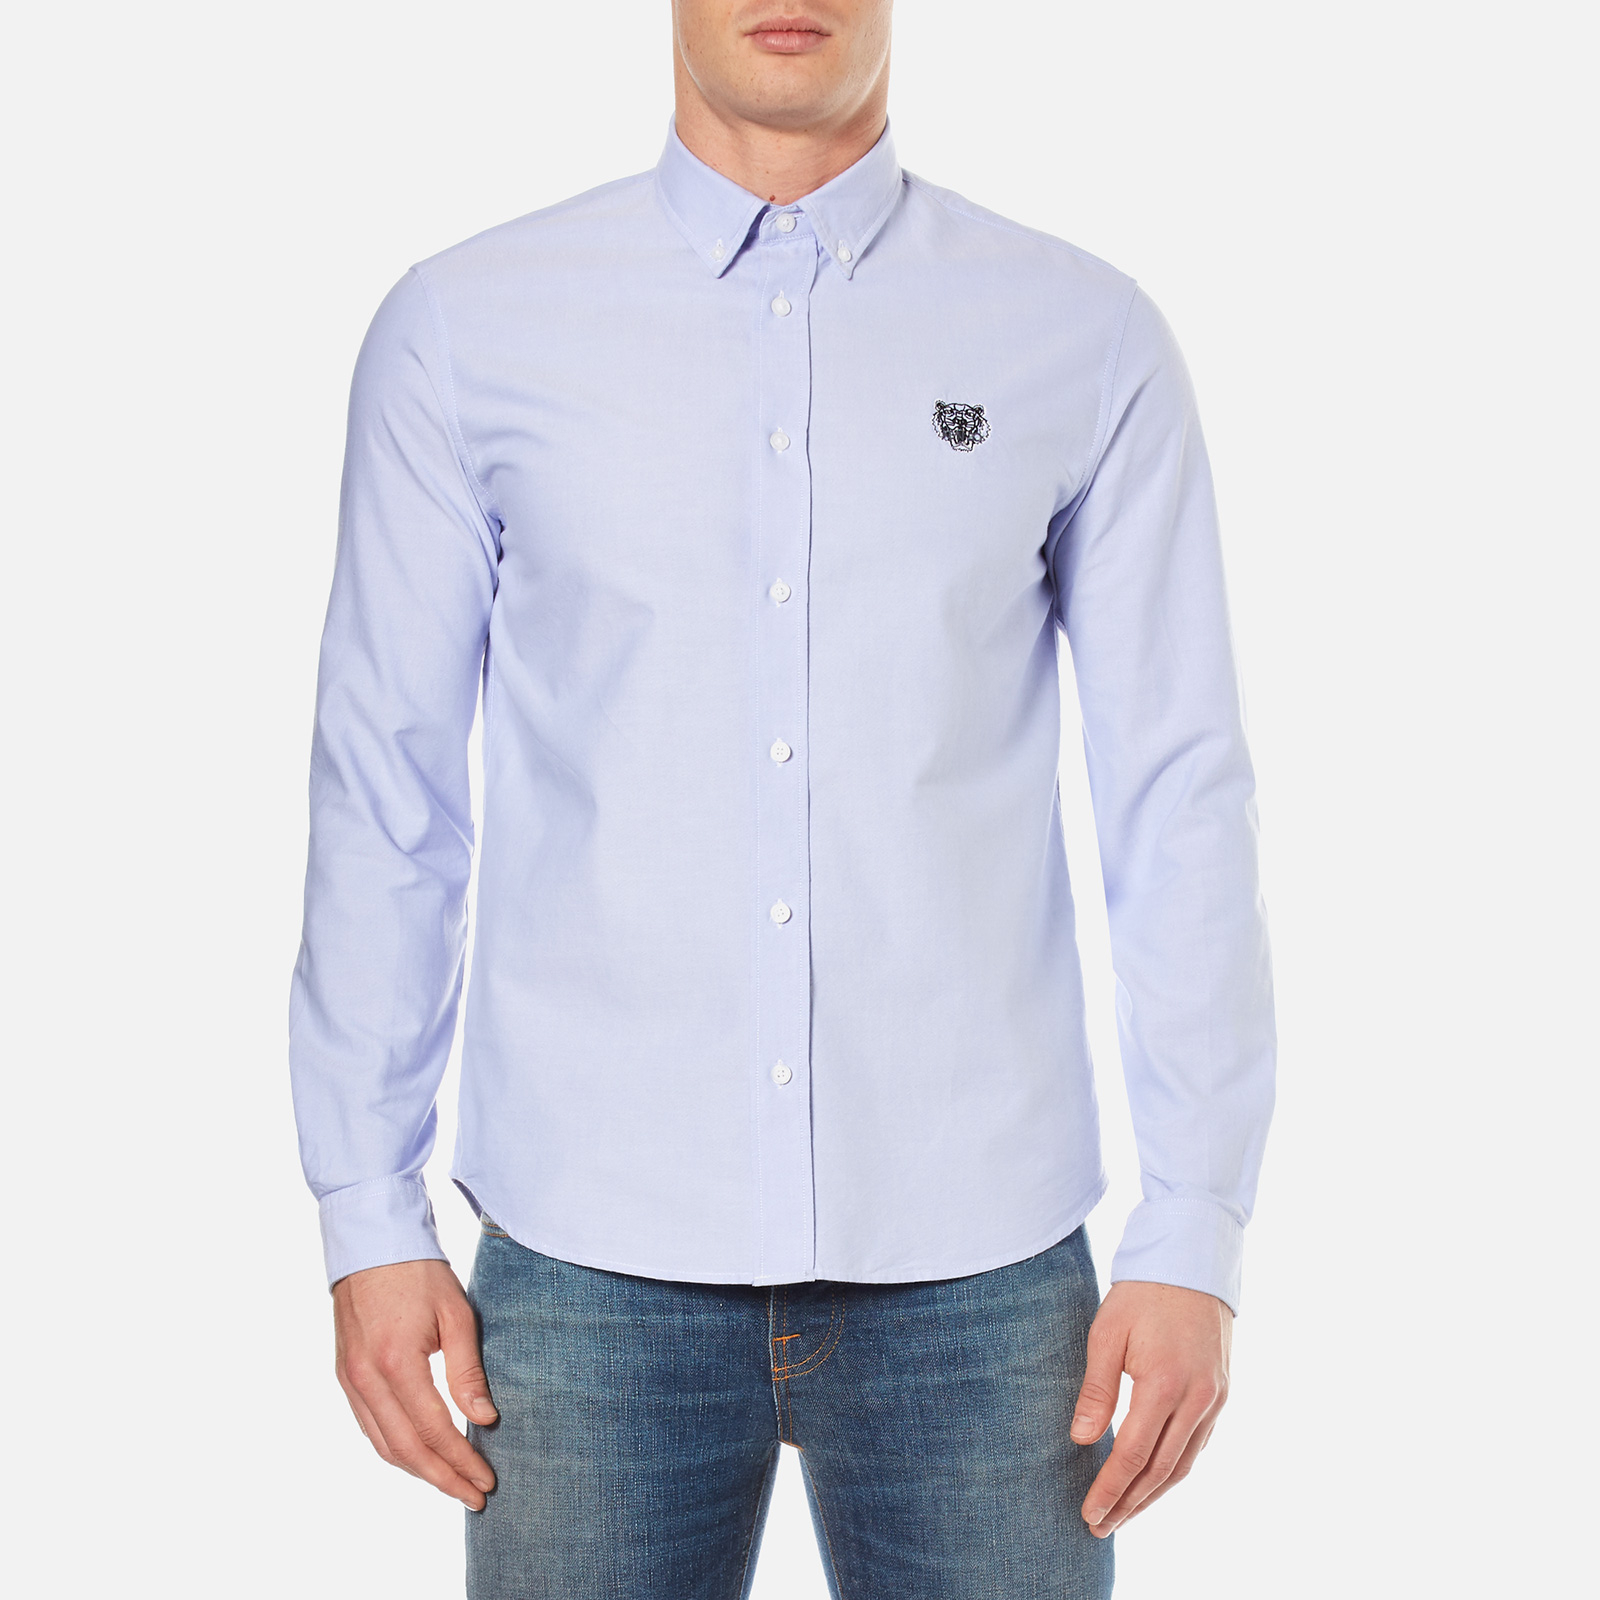 f63254380 KENZO Men's Casual Fit Oxford Tiger Shirt - Sky Blue - Free UK Delivery  over £50